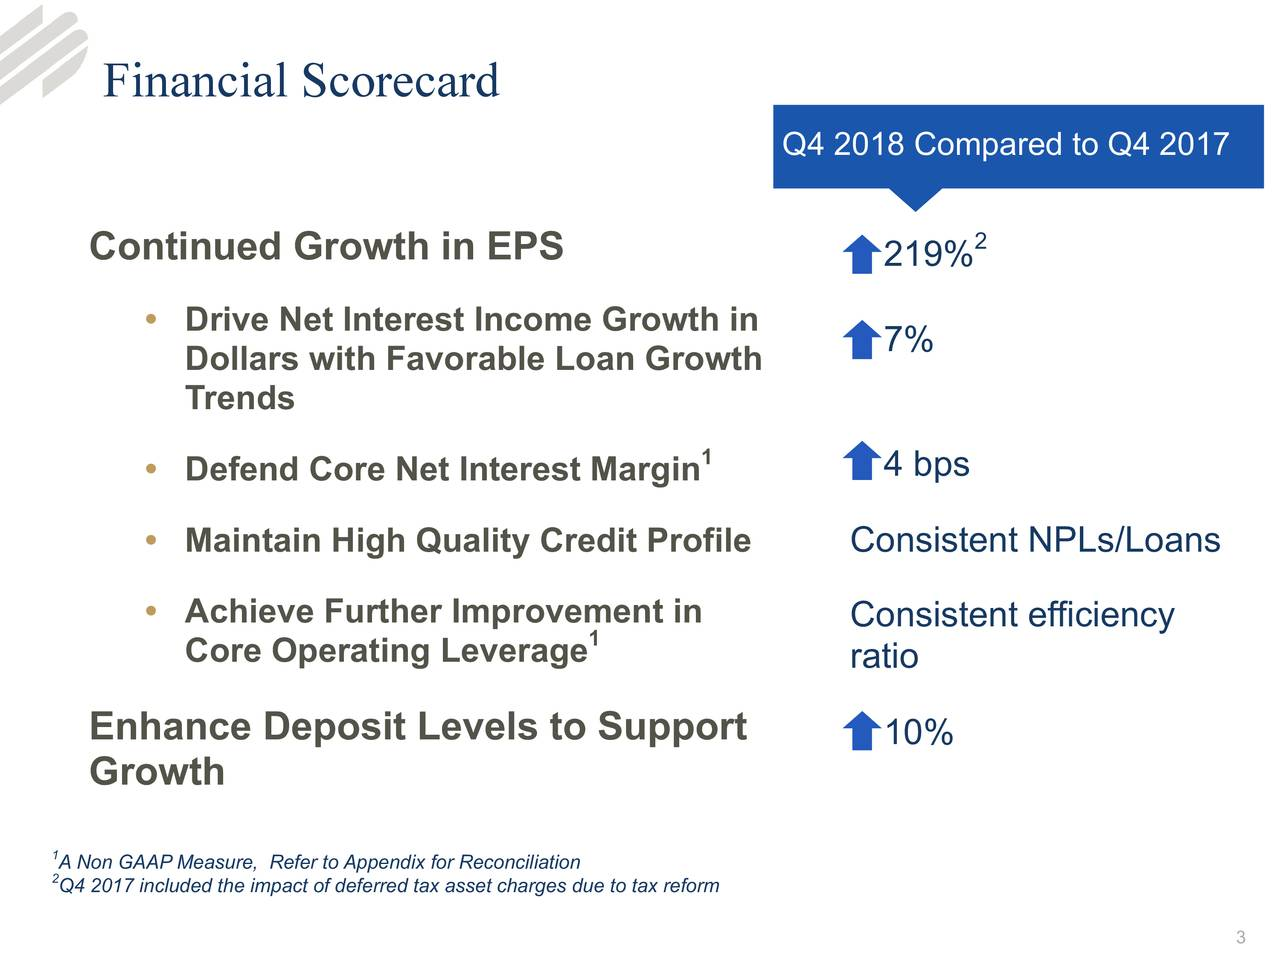 Q4 2018 Compared to Q4 2017 Continued Growth in EPS 2 219% • Drive Net Interest Income Growth in 7% Dollars with Favorable Loan Growth Trends 1 4 bps • Defend Core Net Interest Margin • Maintain High Quality Credit Profile Consistent NPLs/Loans • Achieve Further Improvement in Consistent efficiency Core Operating Leverage 1 ratio Enhance Deposit Levels to Support 10% Growth A Non GAAP Measure, Refer to Appendix for Reconciliation Q4 2017 included the impact of deferred tax asset charges due to tax reform 3